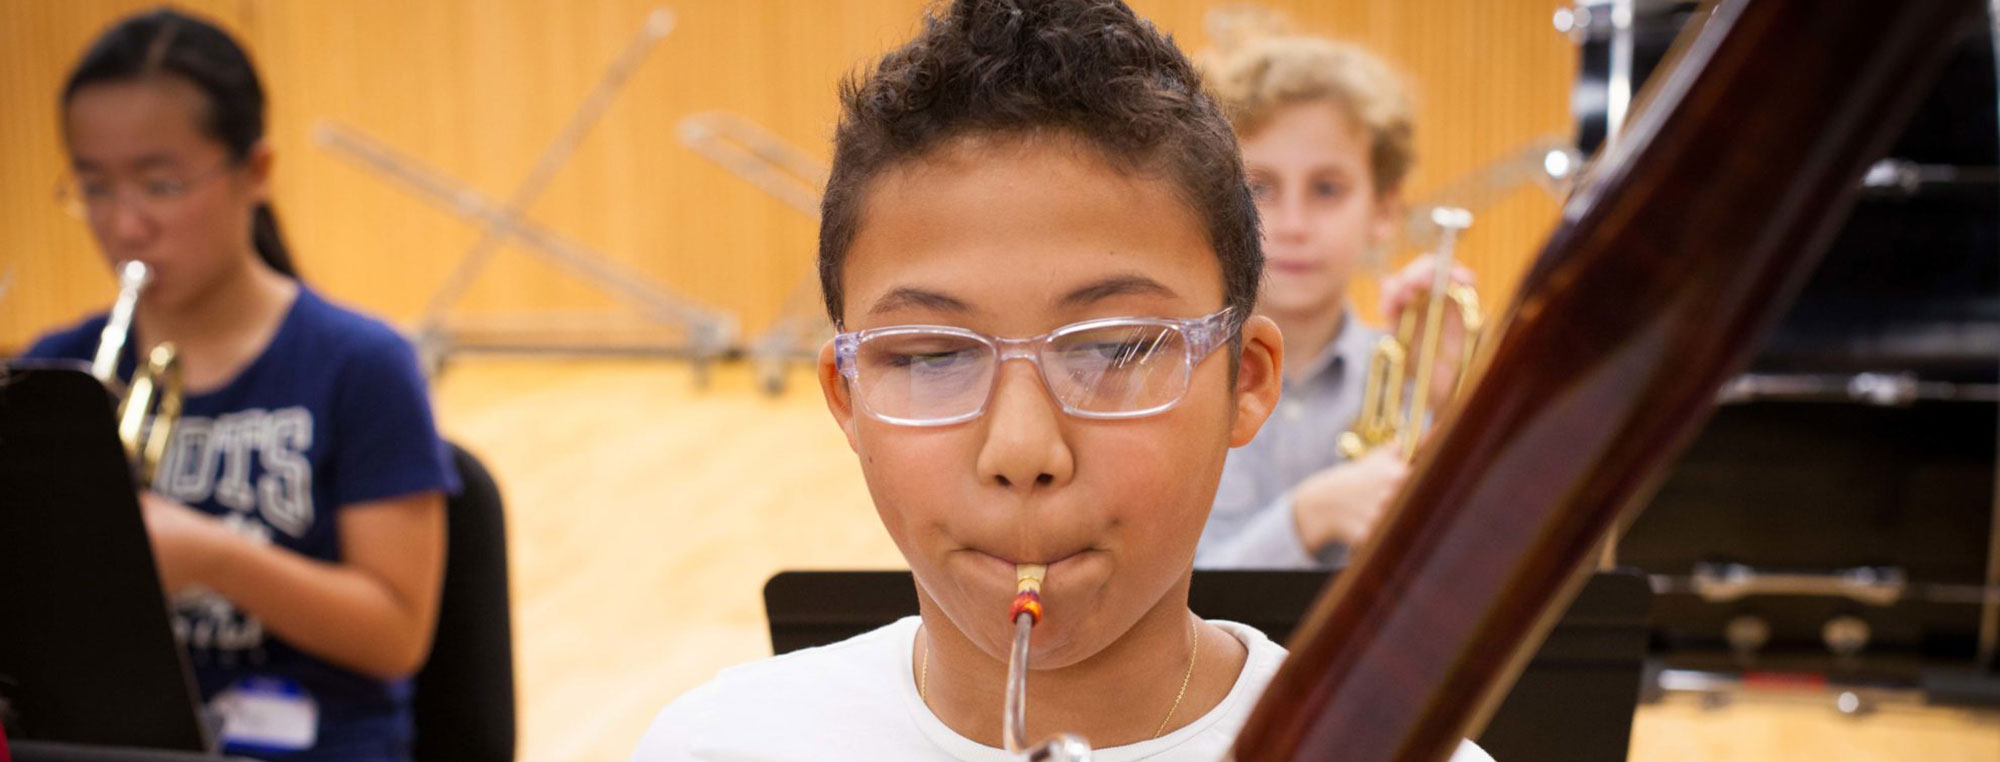 Boy with Glasses Playing Instrument